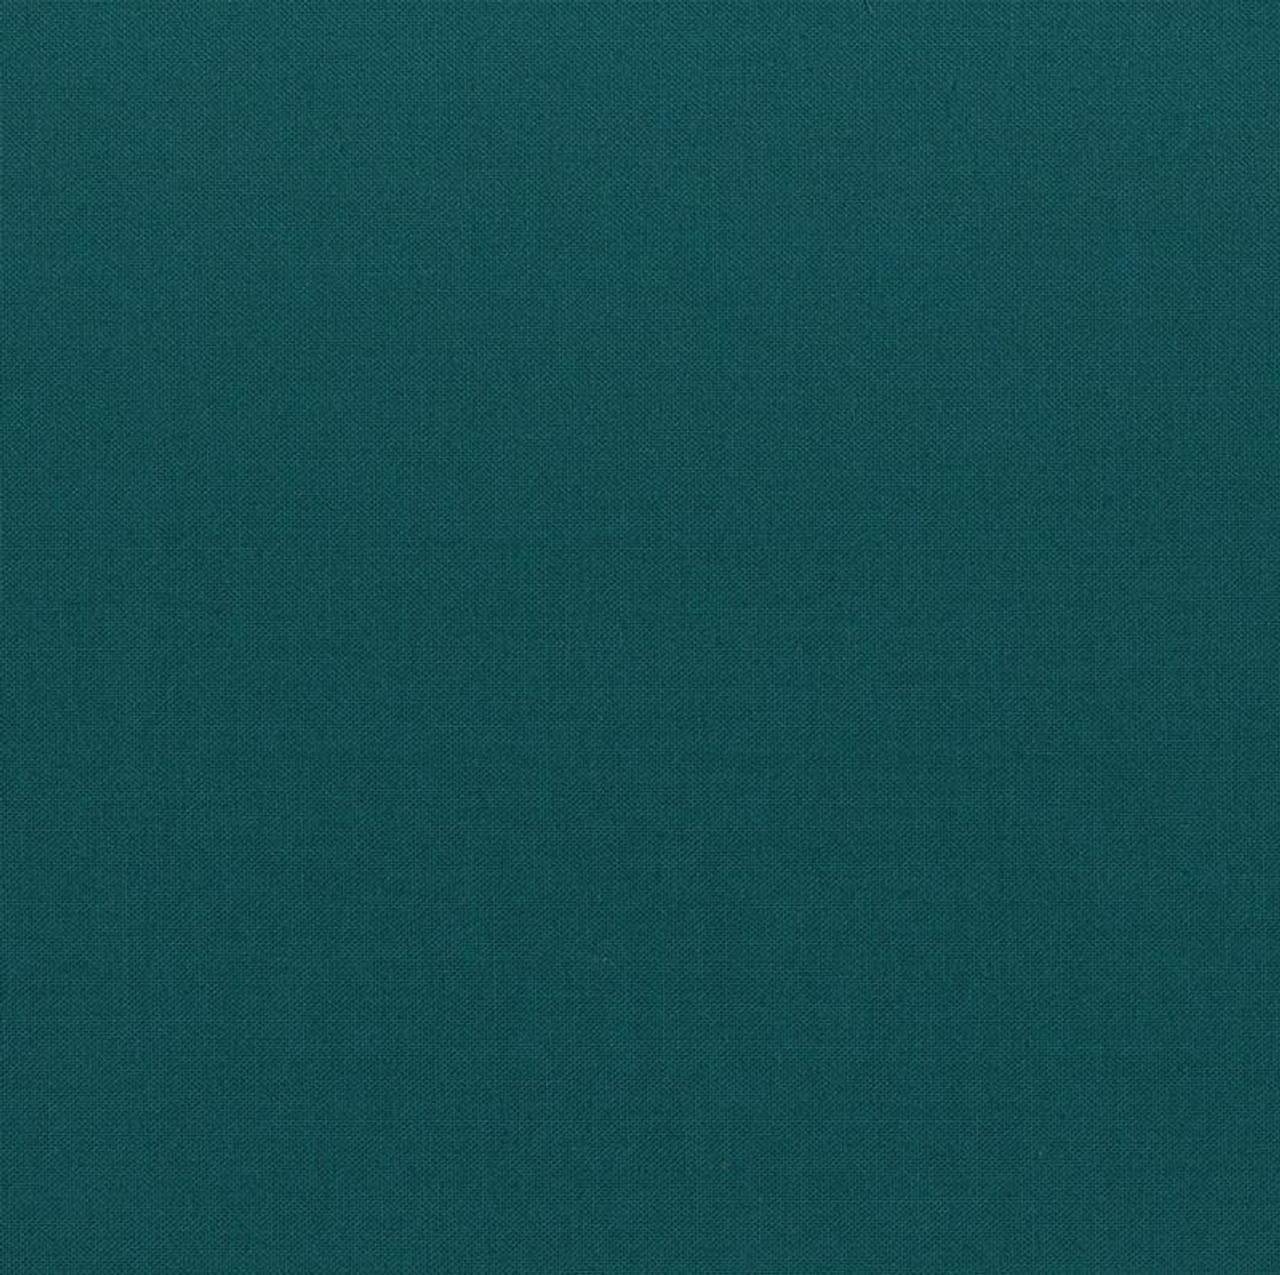 PPS 121-013 TEAL